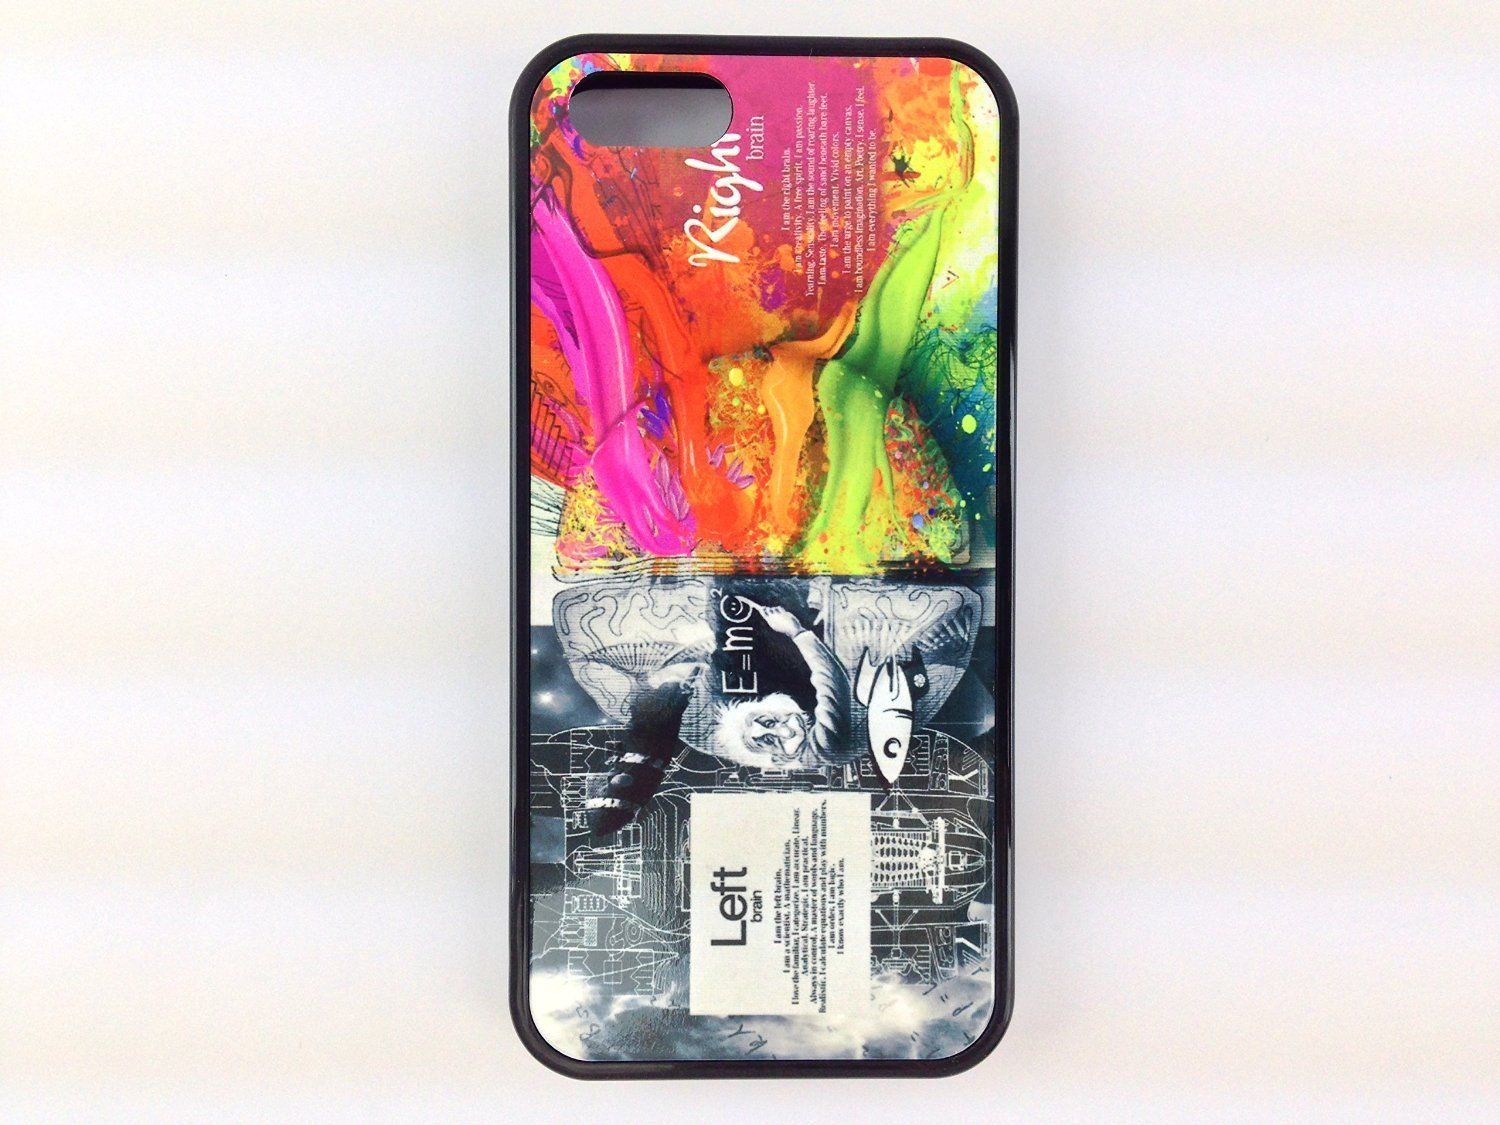 Iphone 5, Iphone 5s Left Right Brain Albert Einstein Inspired Case with Free Screen Protector! For the Geek and Nerd As Well As the Creative and Eccentric.:Amazon:Cell Phones & Accessories